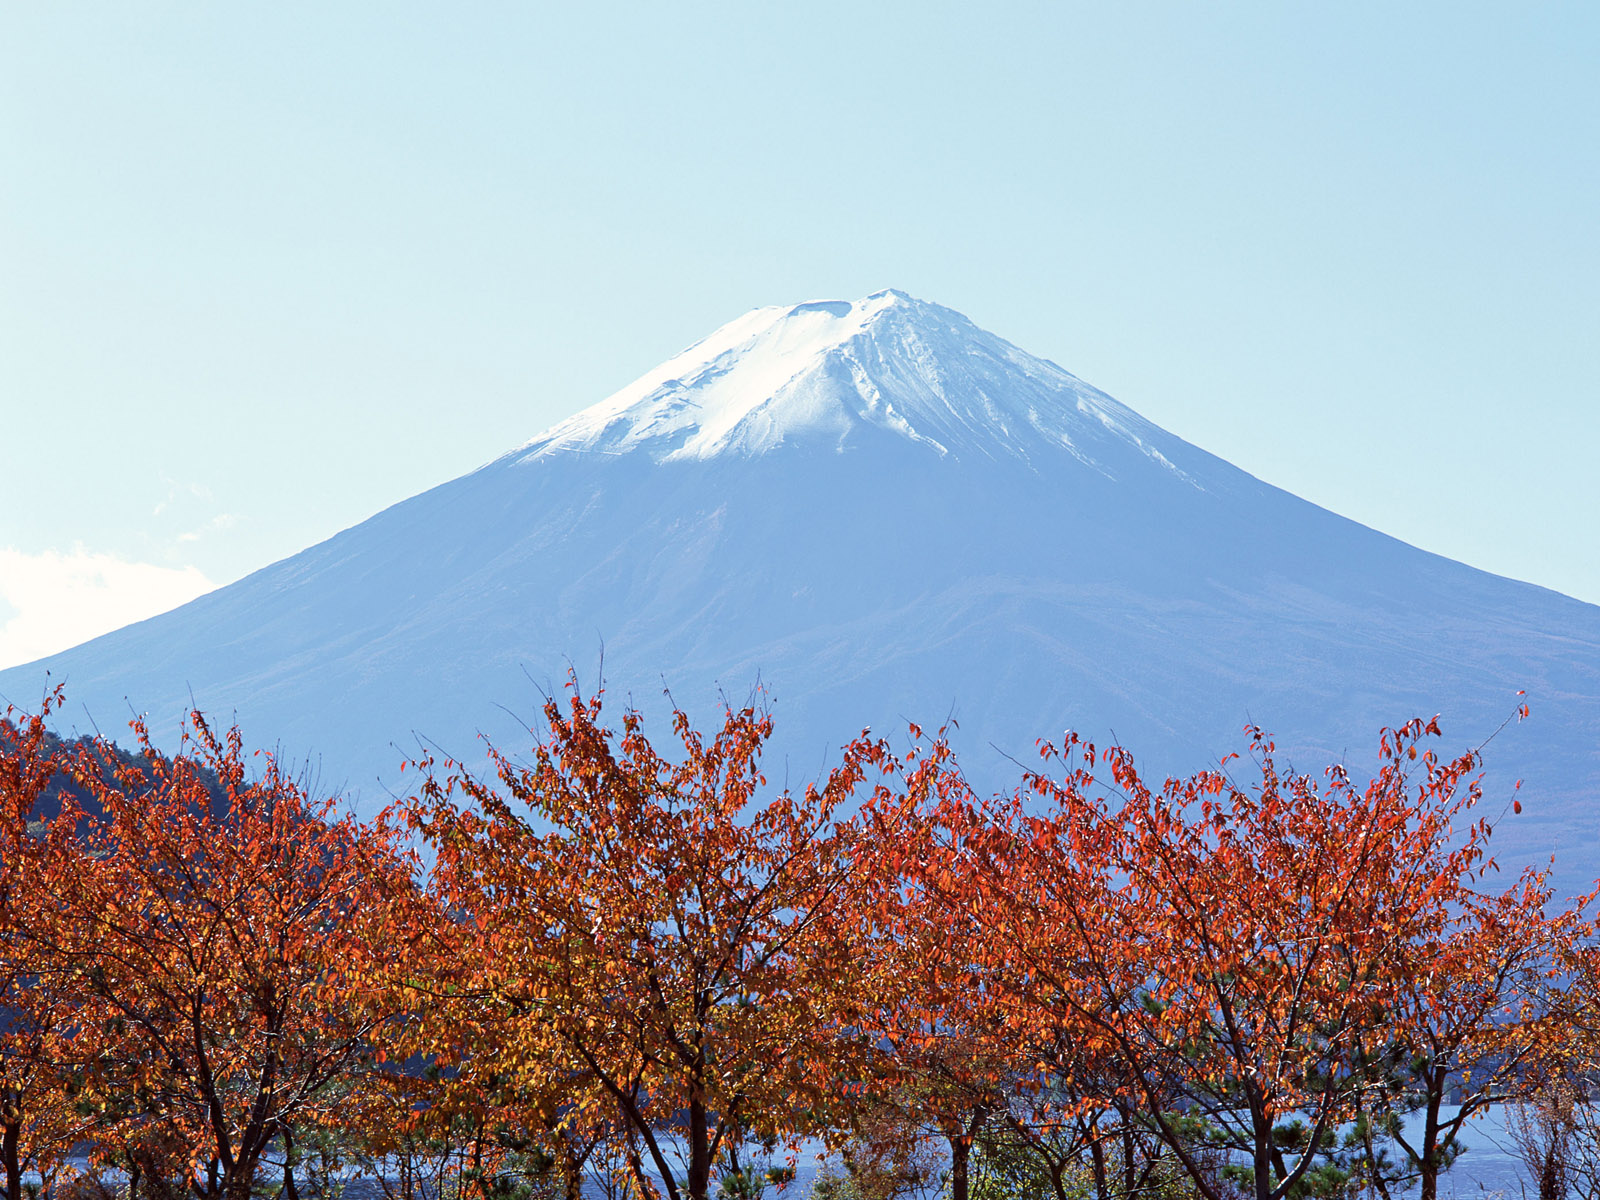 Natural beauty around the world: Natural beauty of Mount Fuji